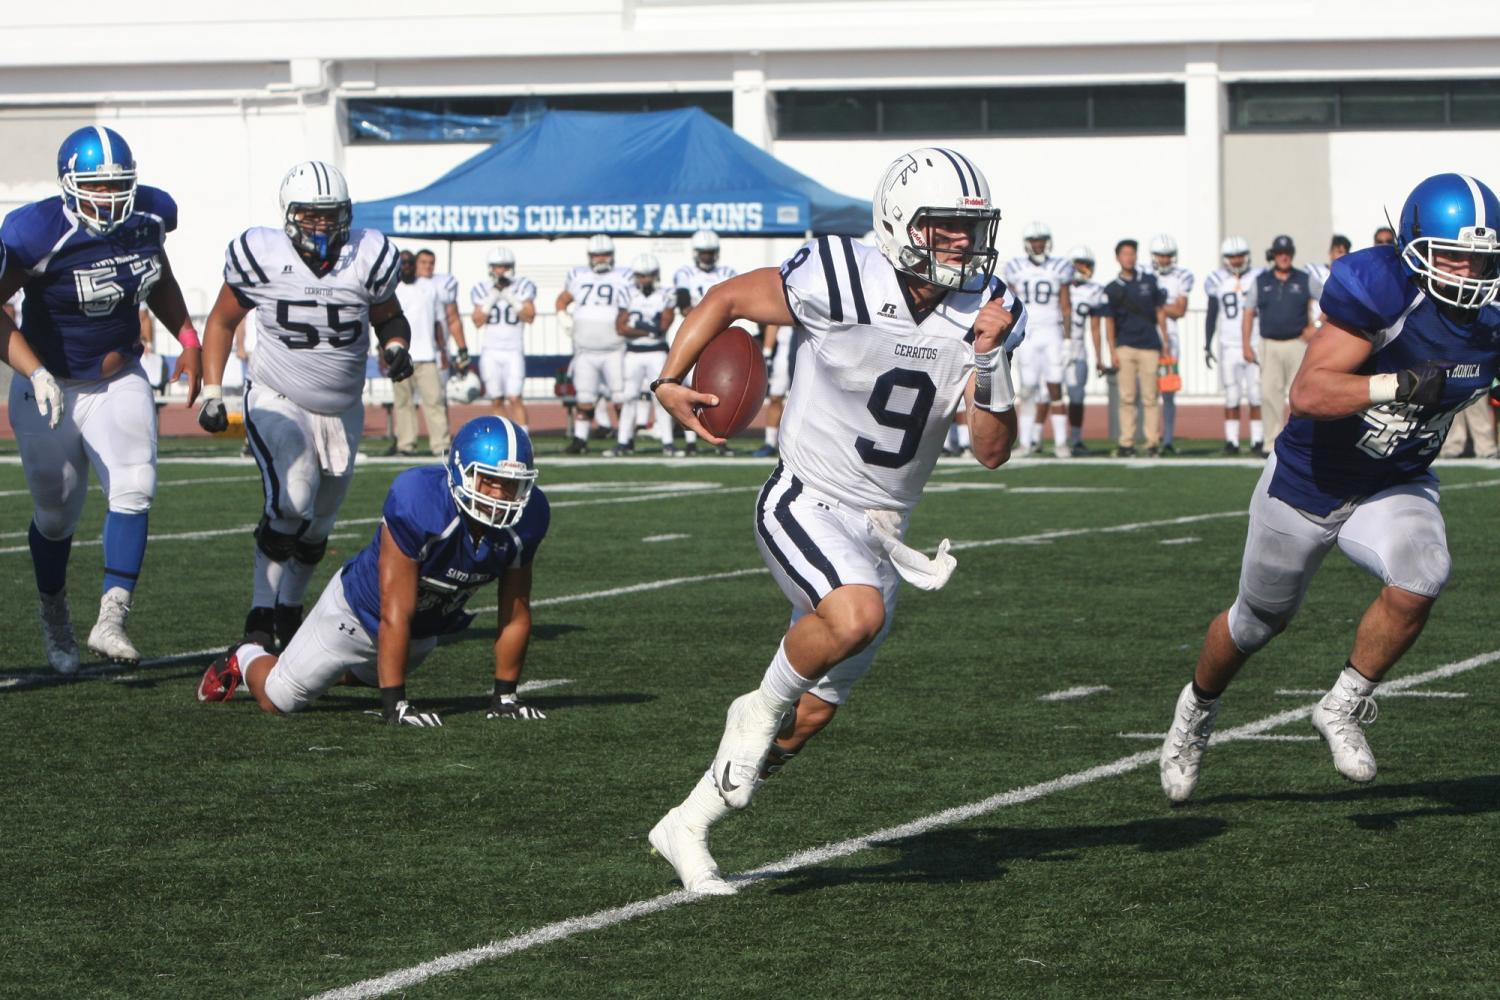 No. 9 quarterback Quentin Davis passing the line of scrimmage to run onto Santa Monica territory. Photo credit: David Jenkins